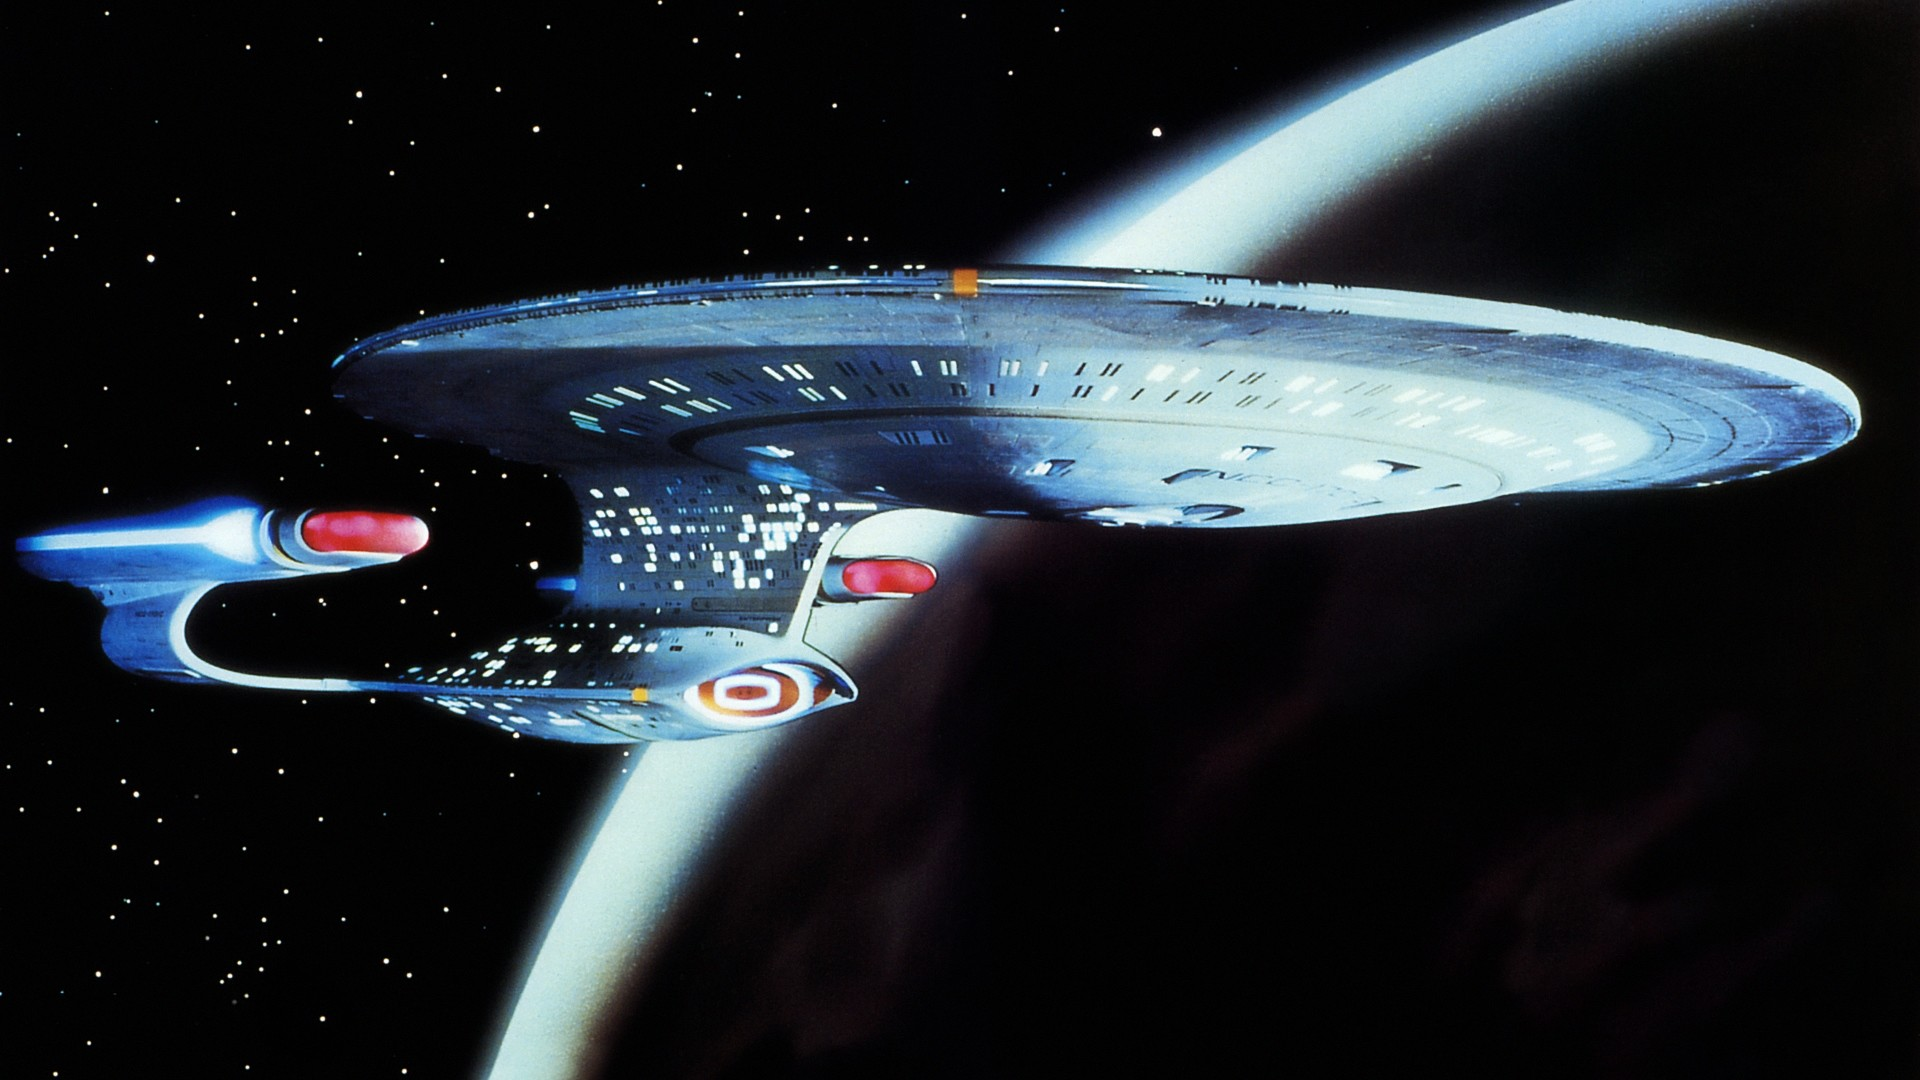 Res: 1920x1080, Star Trek Wallpaper 1080p ImageBankbiz